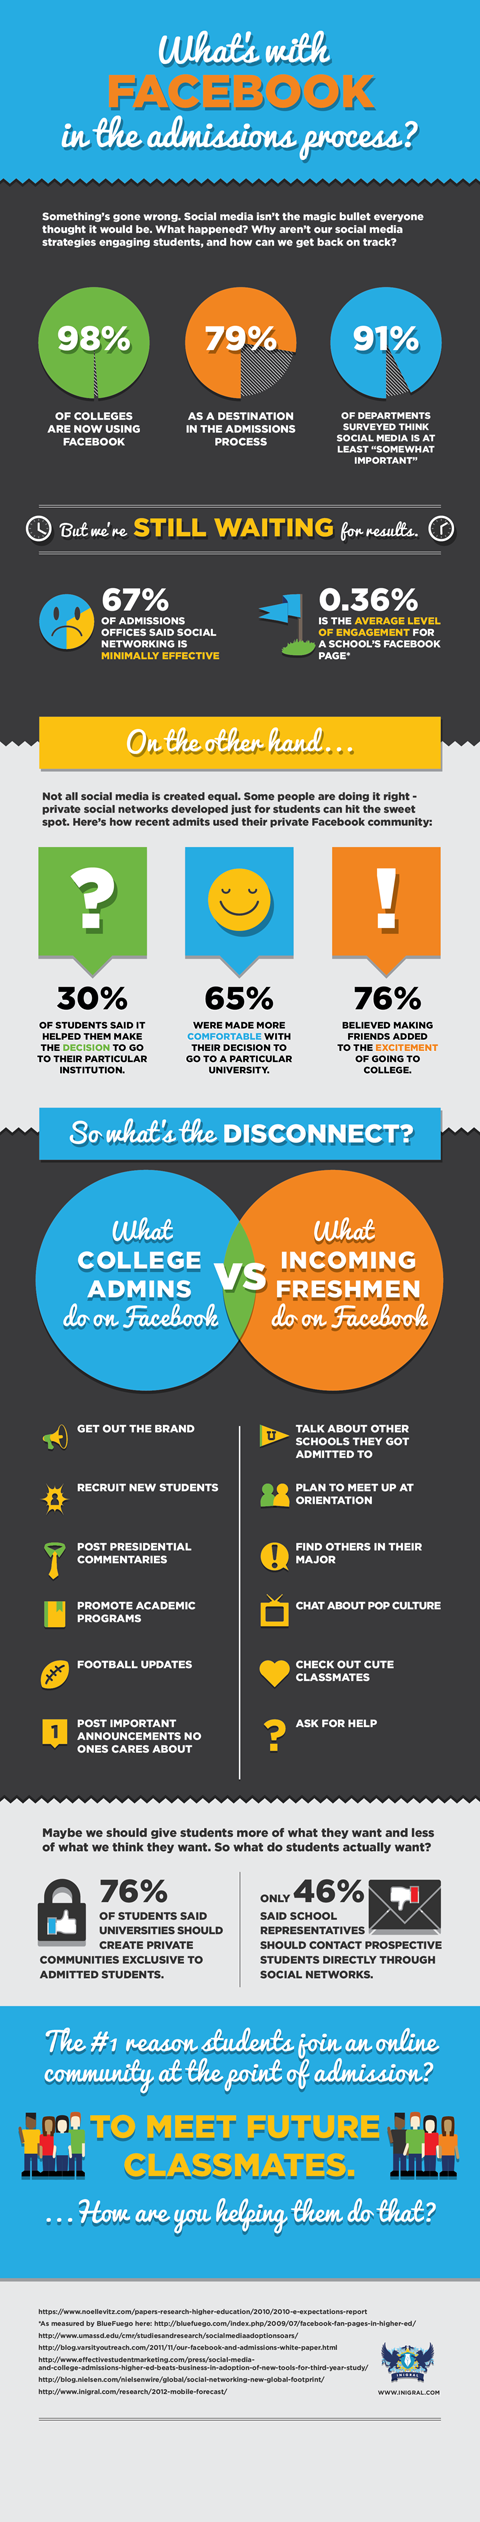 The Disconnect Between College Admins And Incoming Freshmen On Facebook #infographic via @Inigral